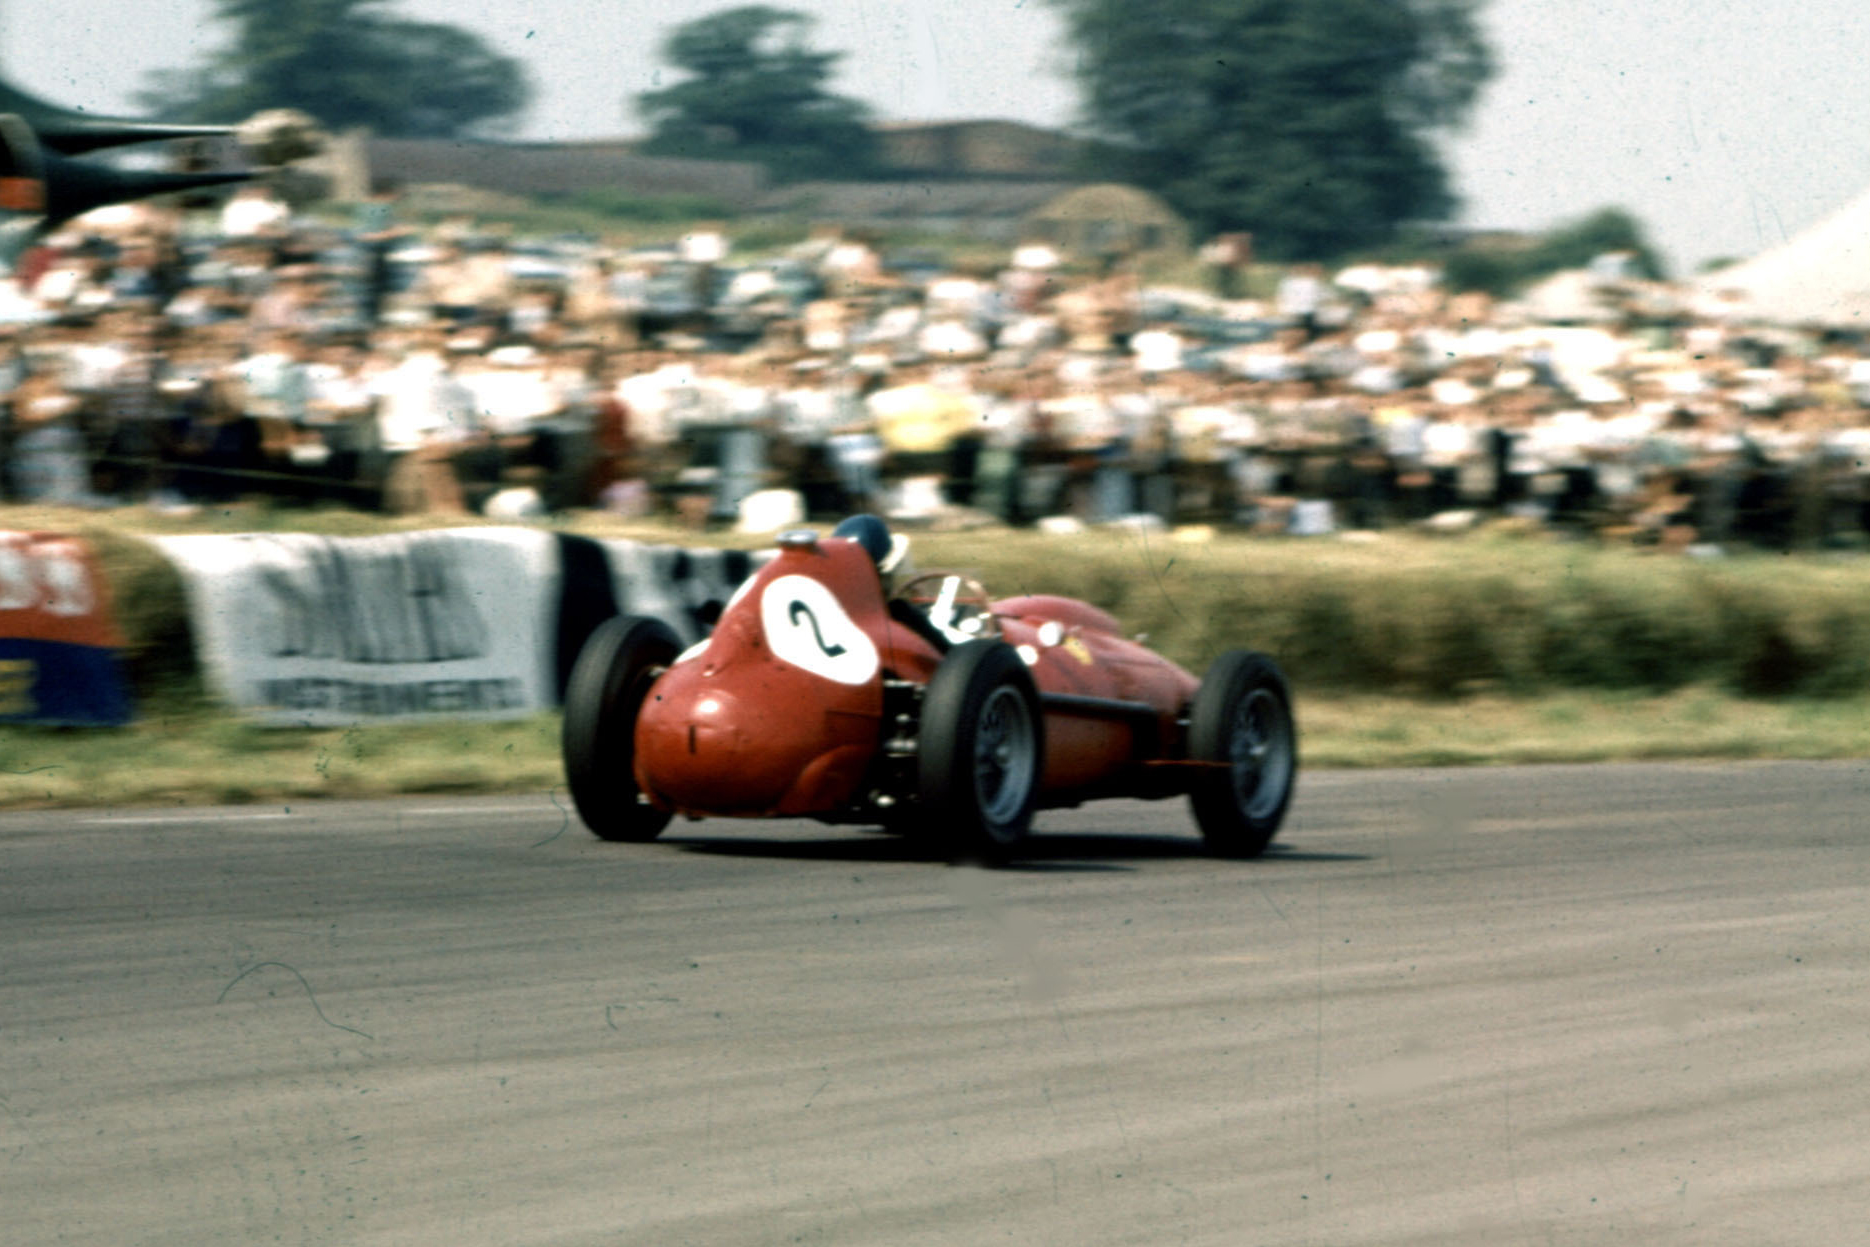 Mike Hawthorn piloting his Ferrari Dino 246 to 2nd place.